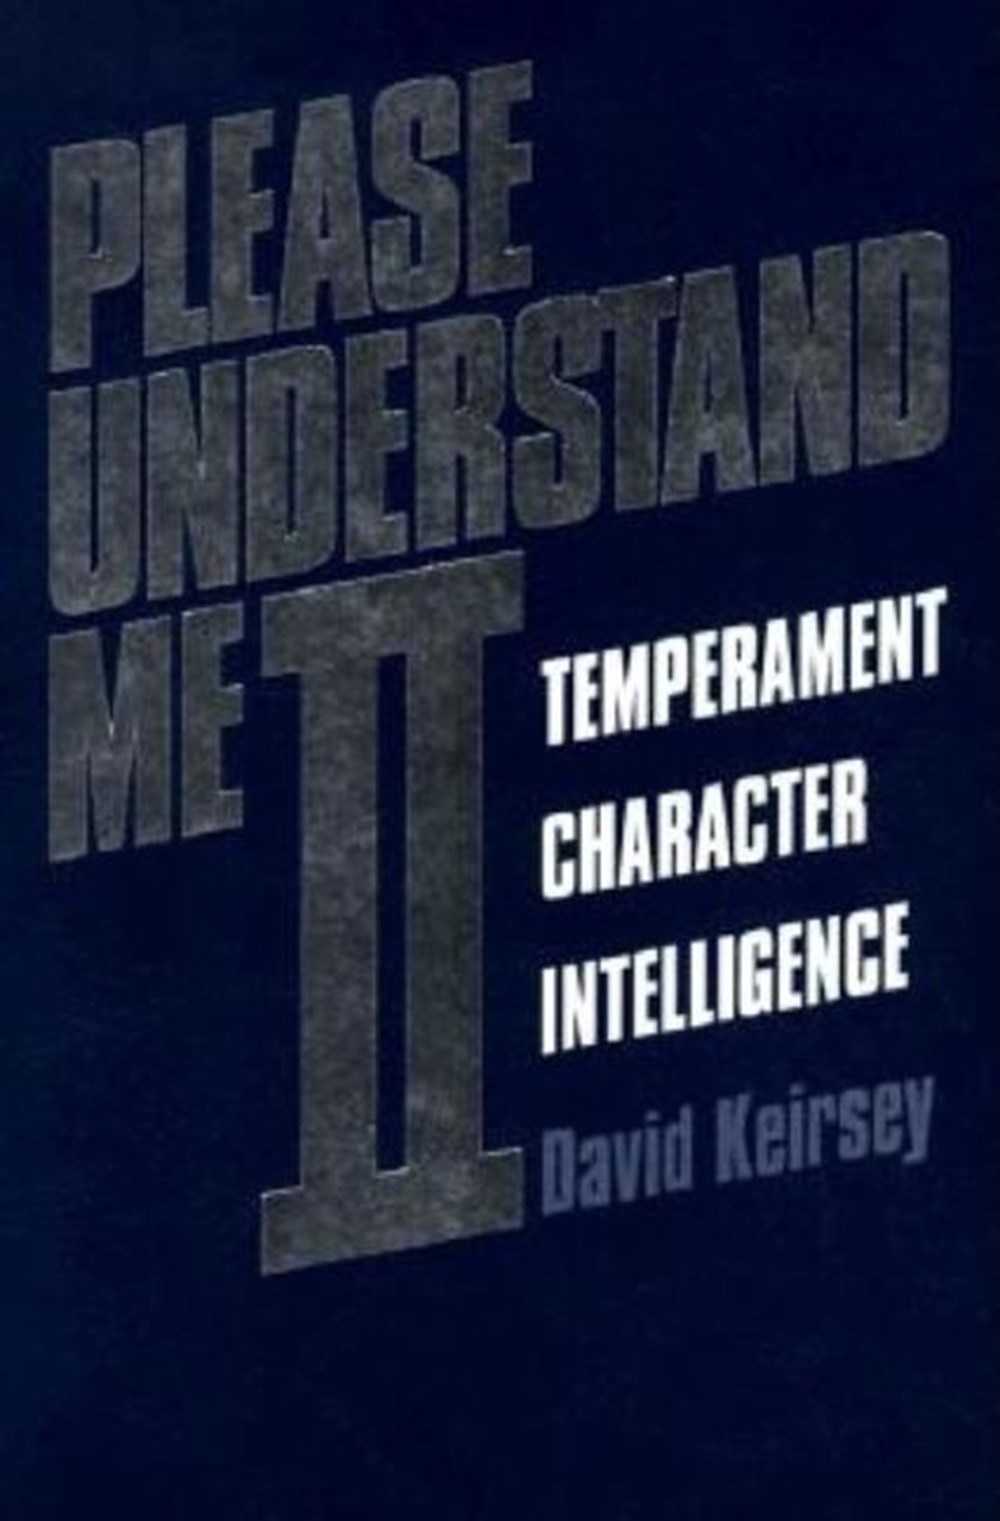 Please Understand Me II Temperament, Character, Intelligence